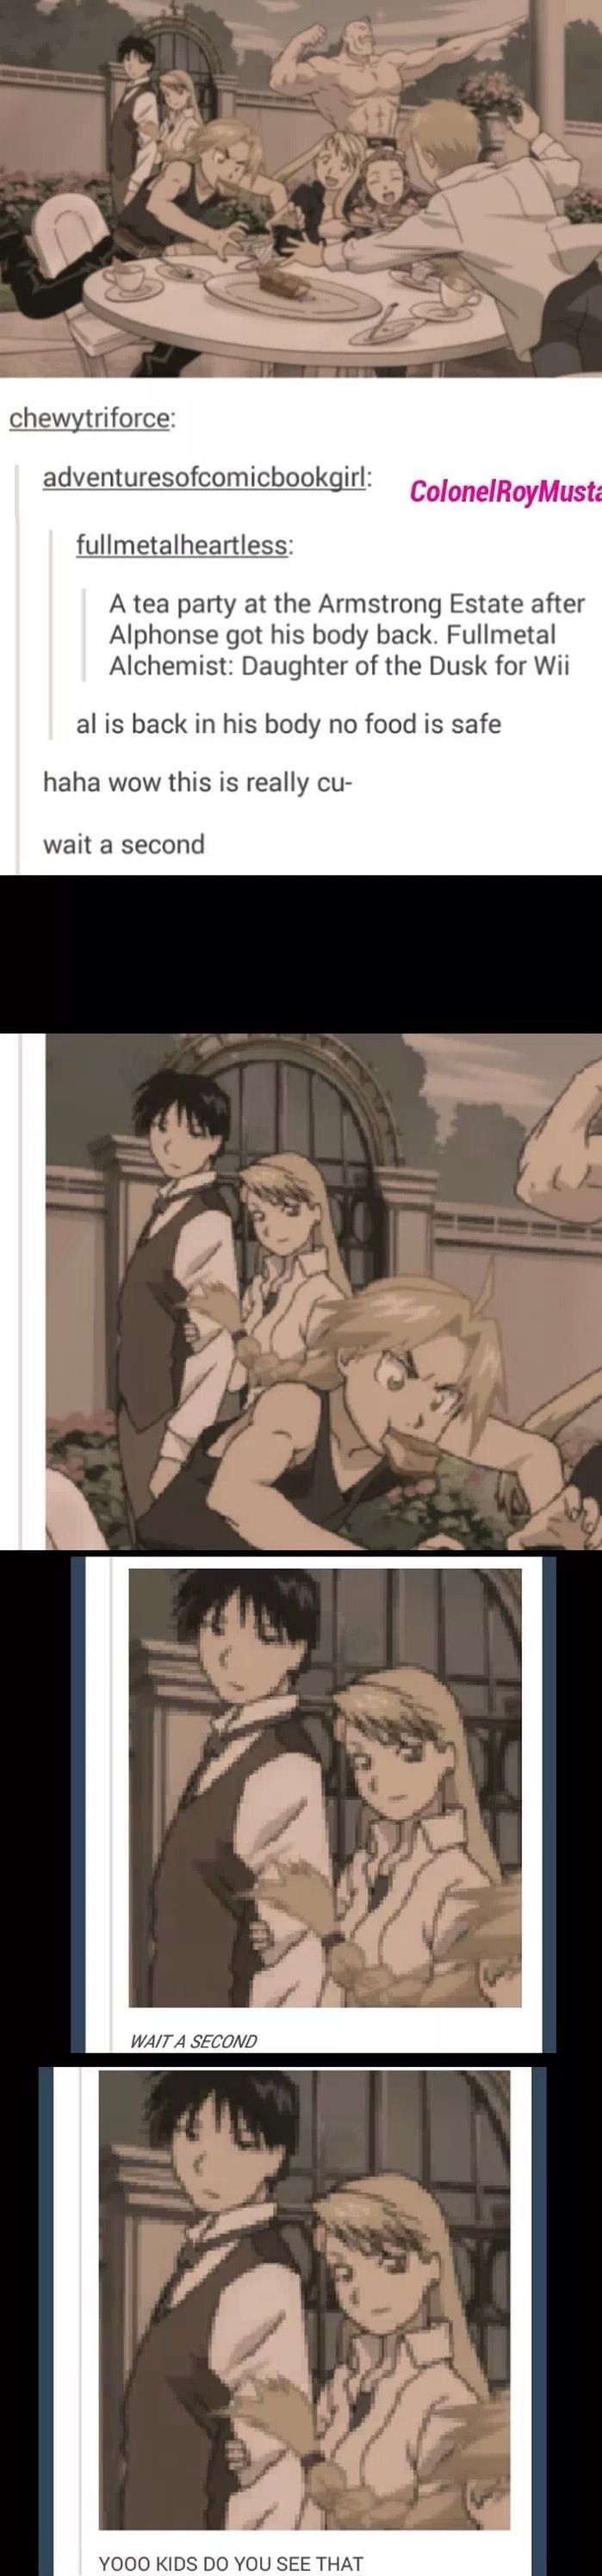 Look at Roy Mustang and Riza Hawkeye! Oh yeah! XD       _Fullmetal Alchemist Brotherhood